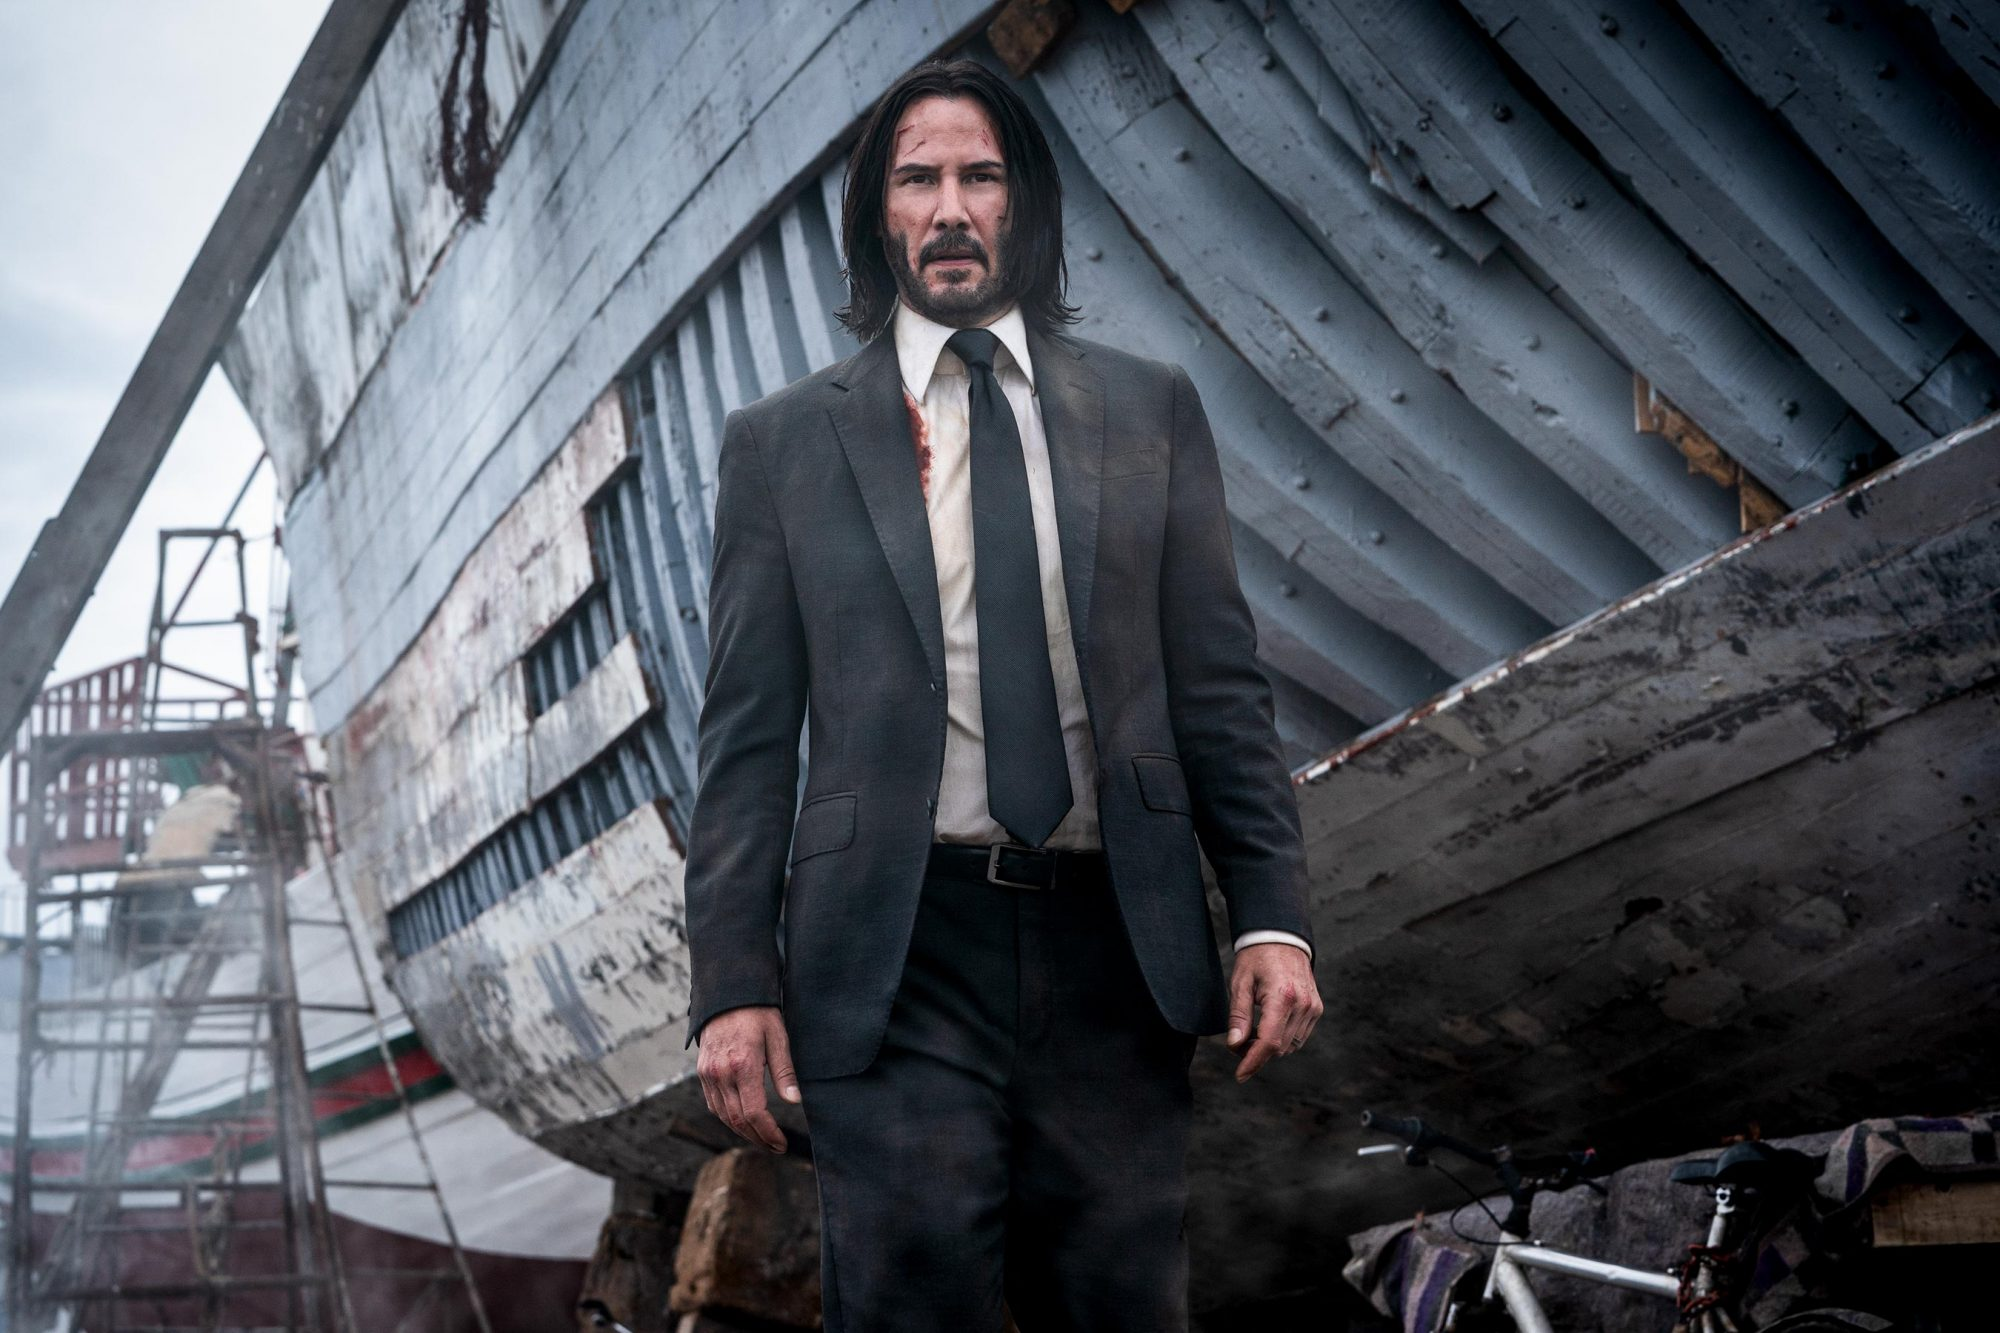 Keanu Reeves stars as 'John Wick' in JOHN WICK: CHAPTER 3 - PARABELLUM. Photo Credit: Mark Rogers/Lionsgate